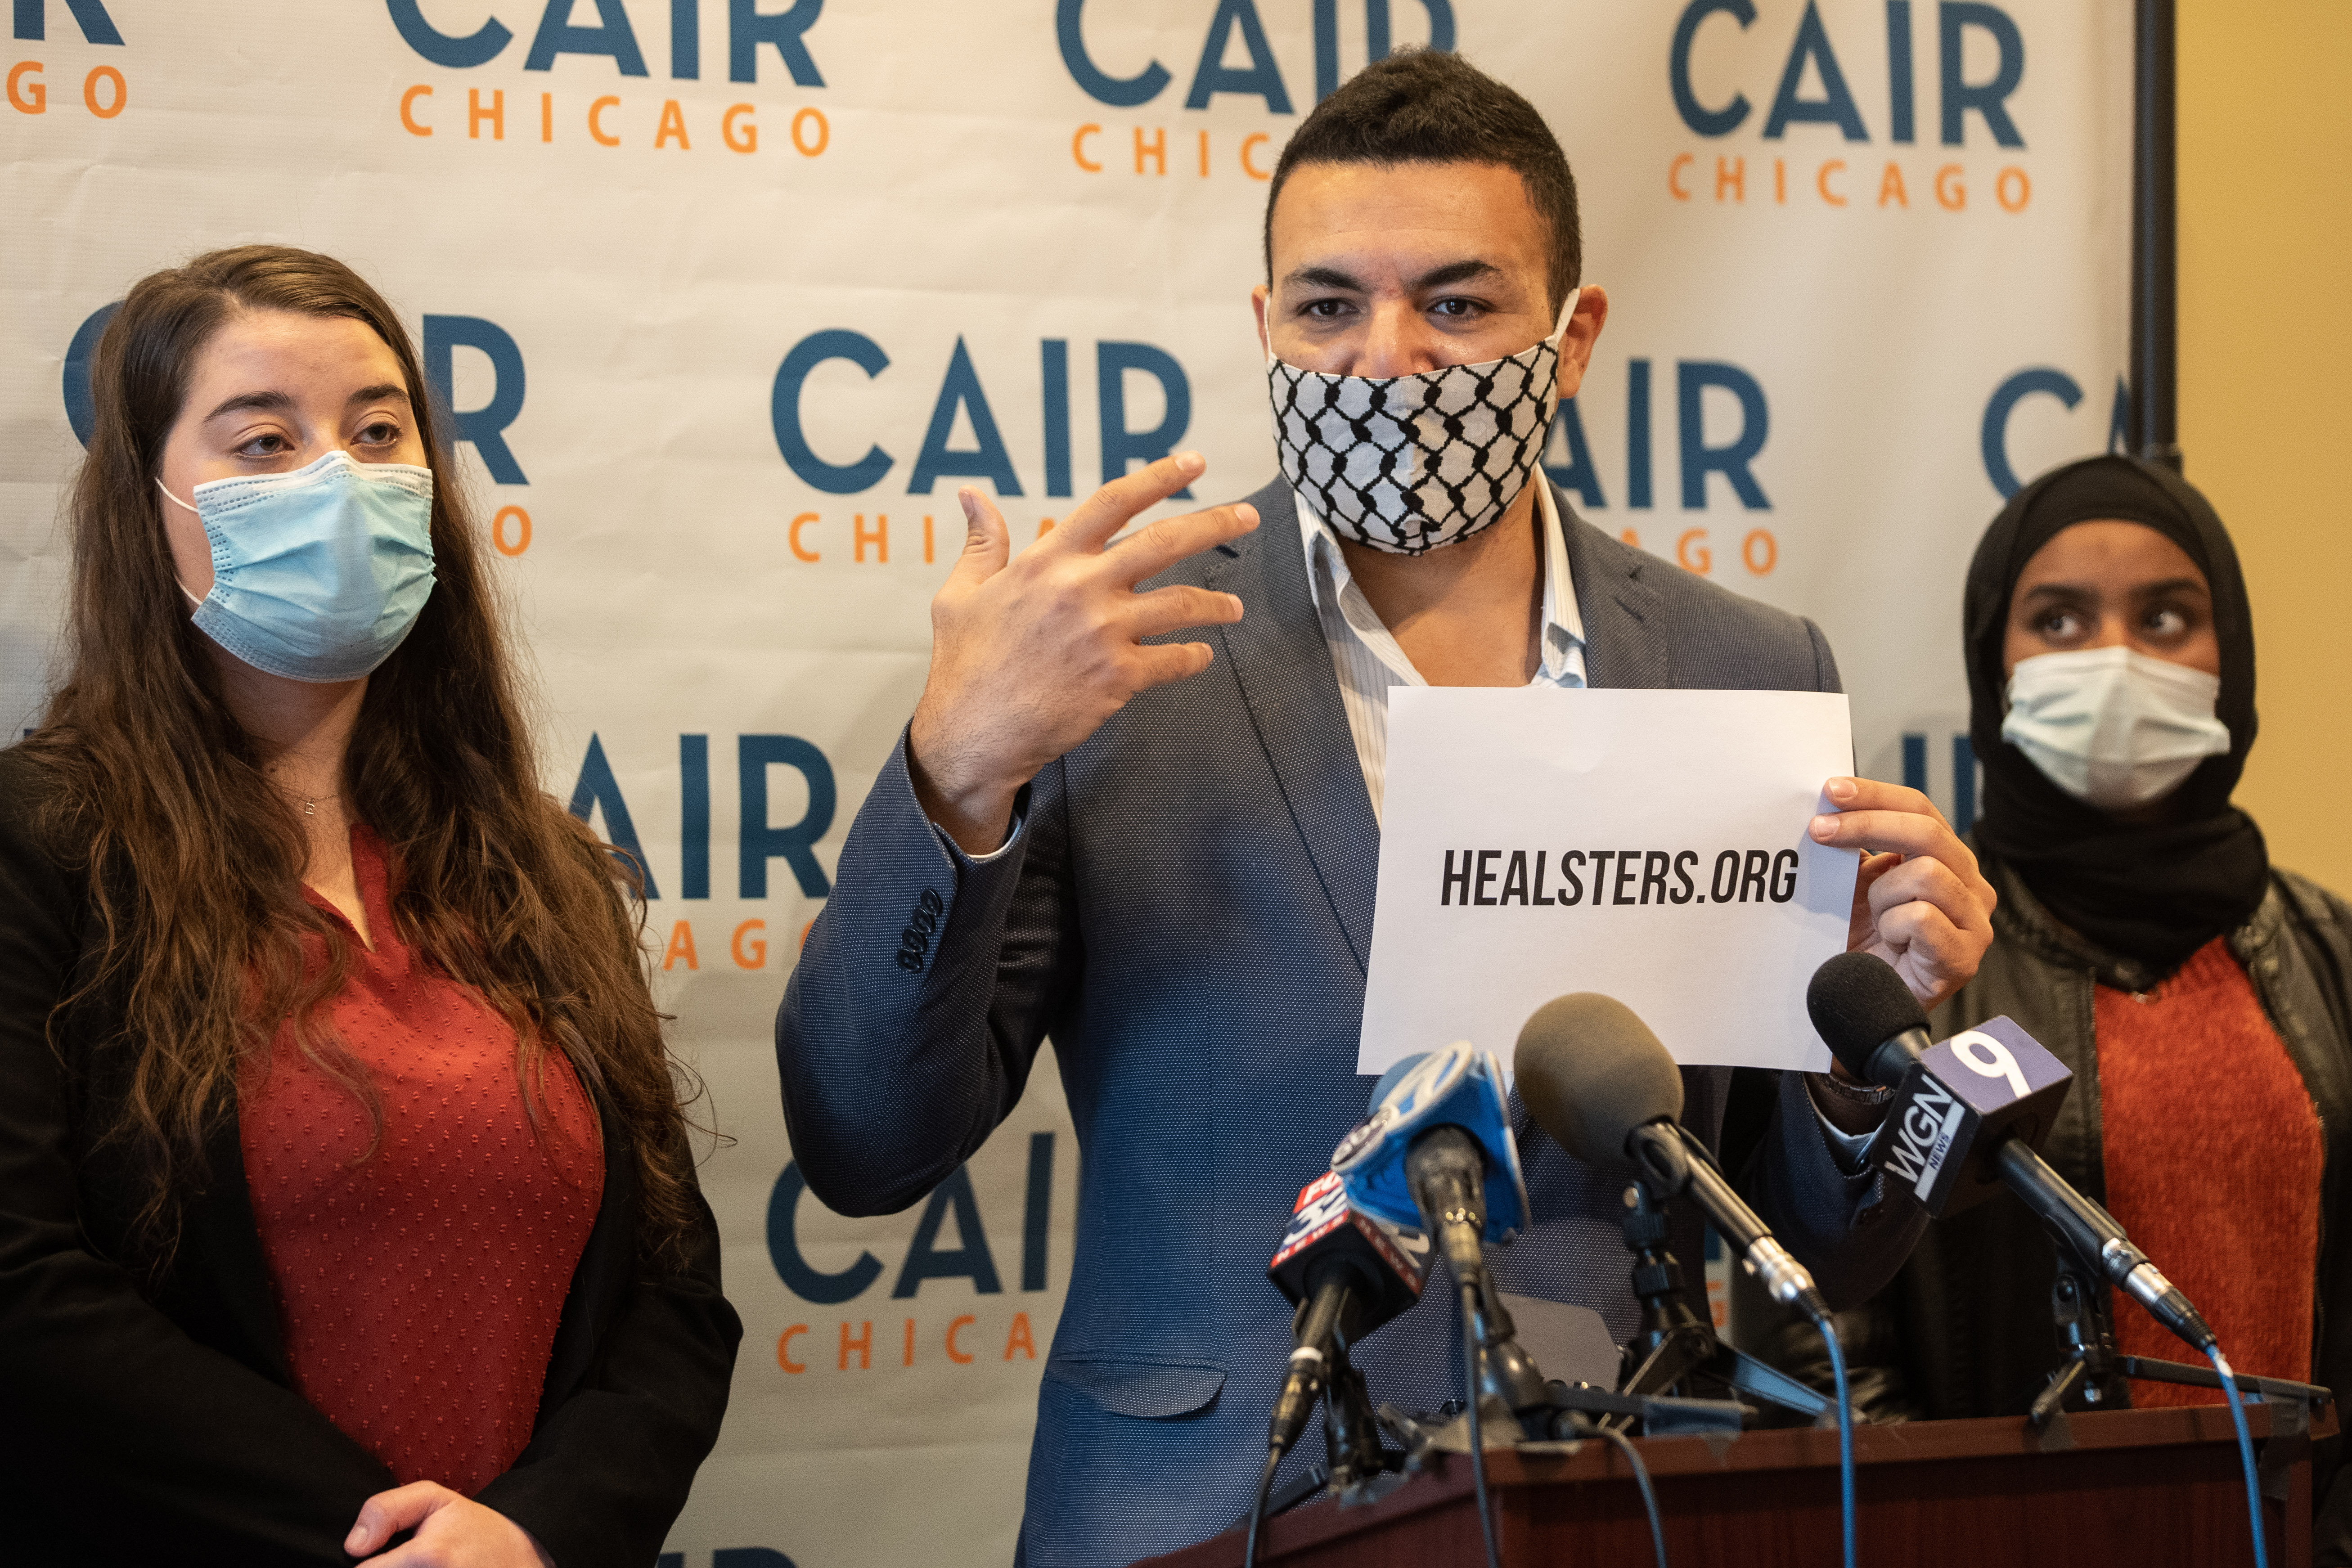 Ahmed Rehab, executive director of CAIR Chicago, announces a new initiative Thursday in response to a recent uptick in bullying of students with Middle Eastern roots.